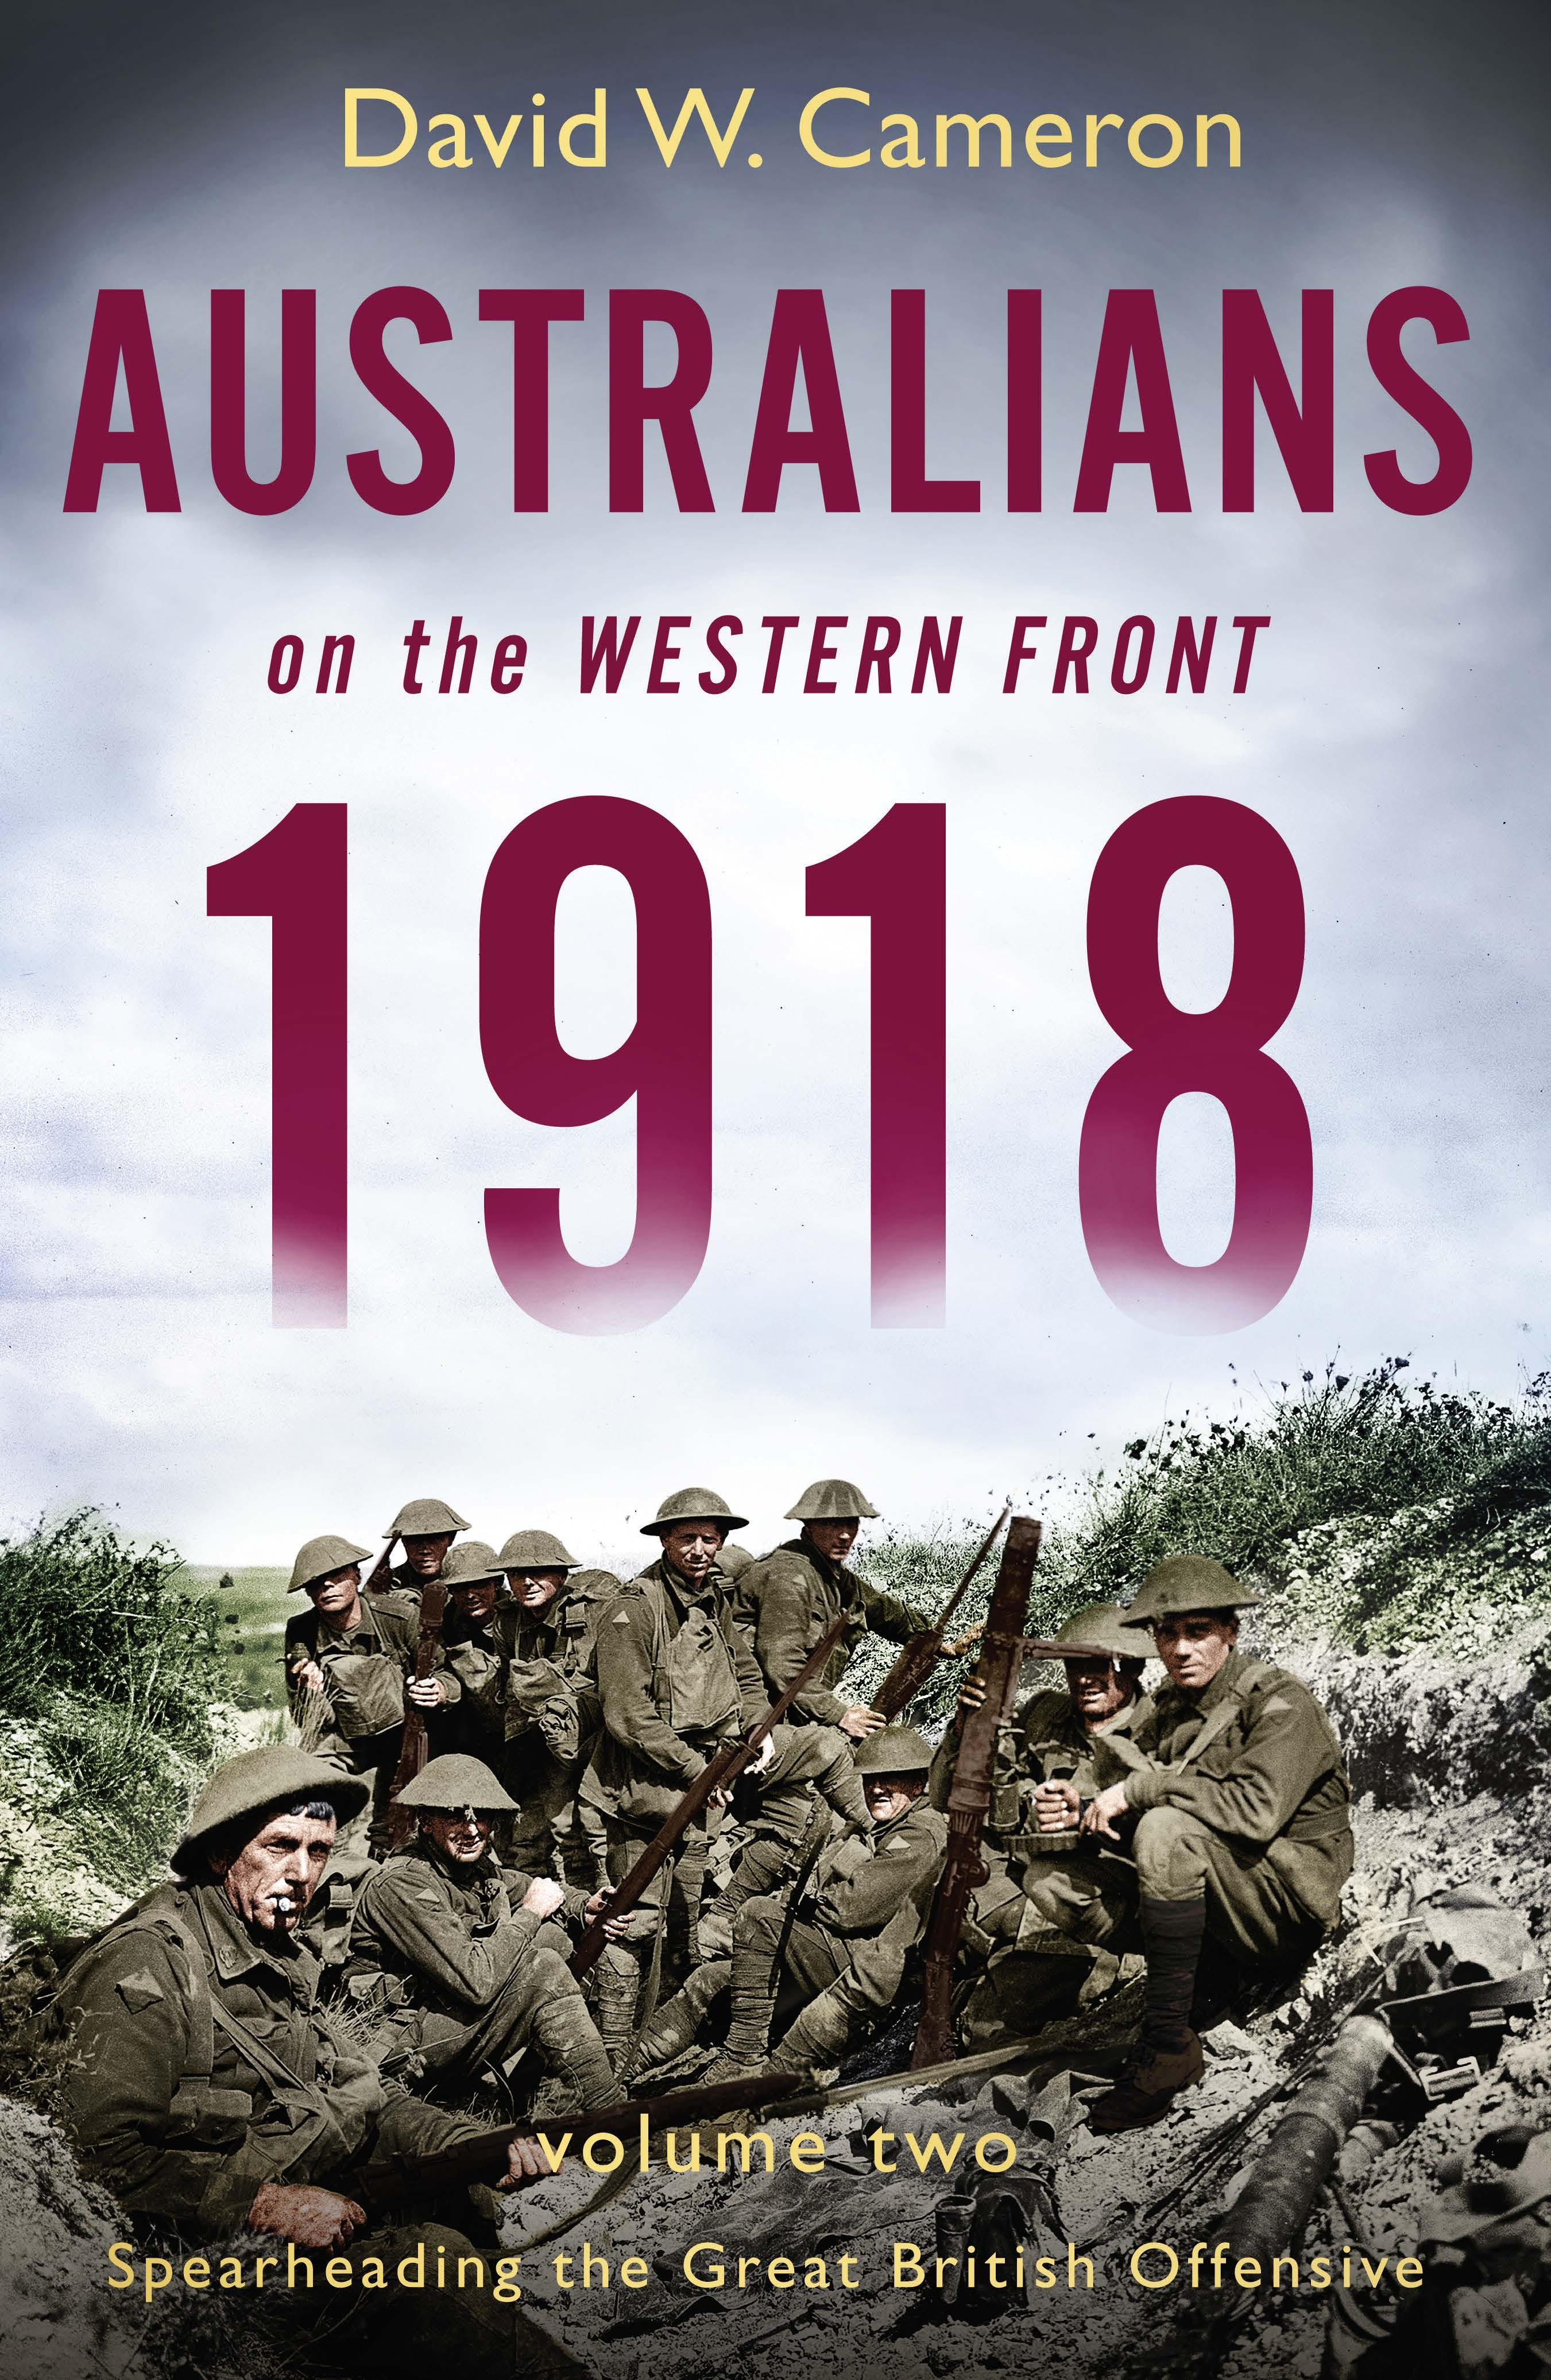 Australians on the Western Front 1918 Volume IISpearheading the Great British Offensive